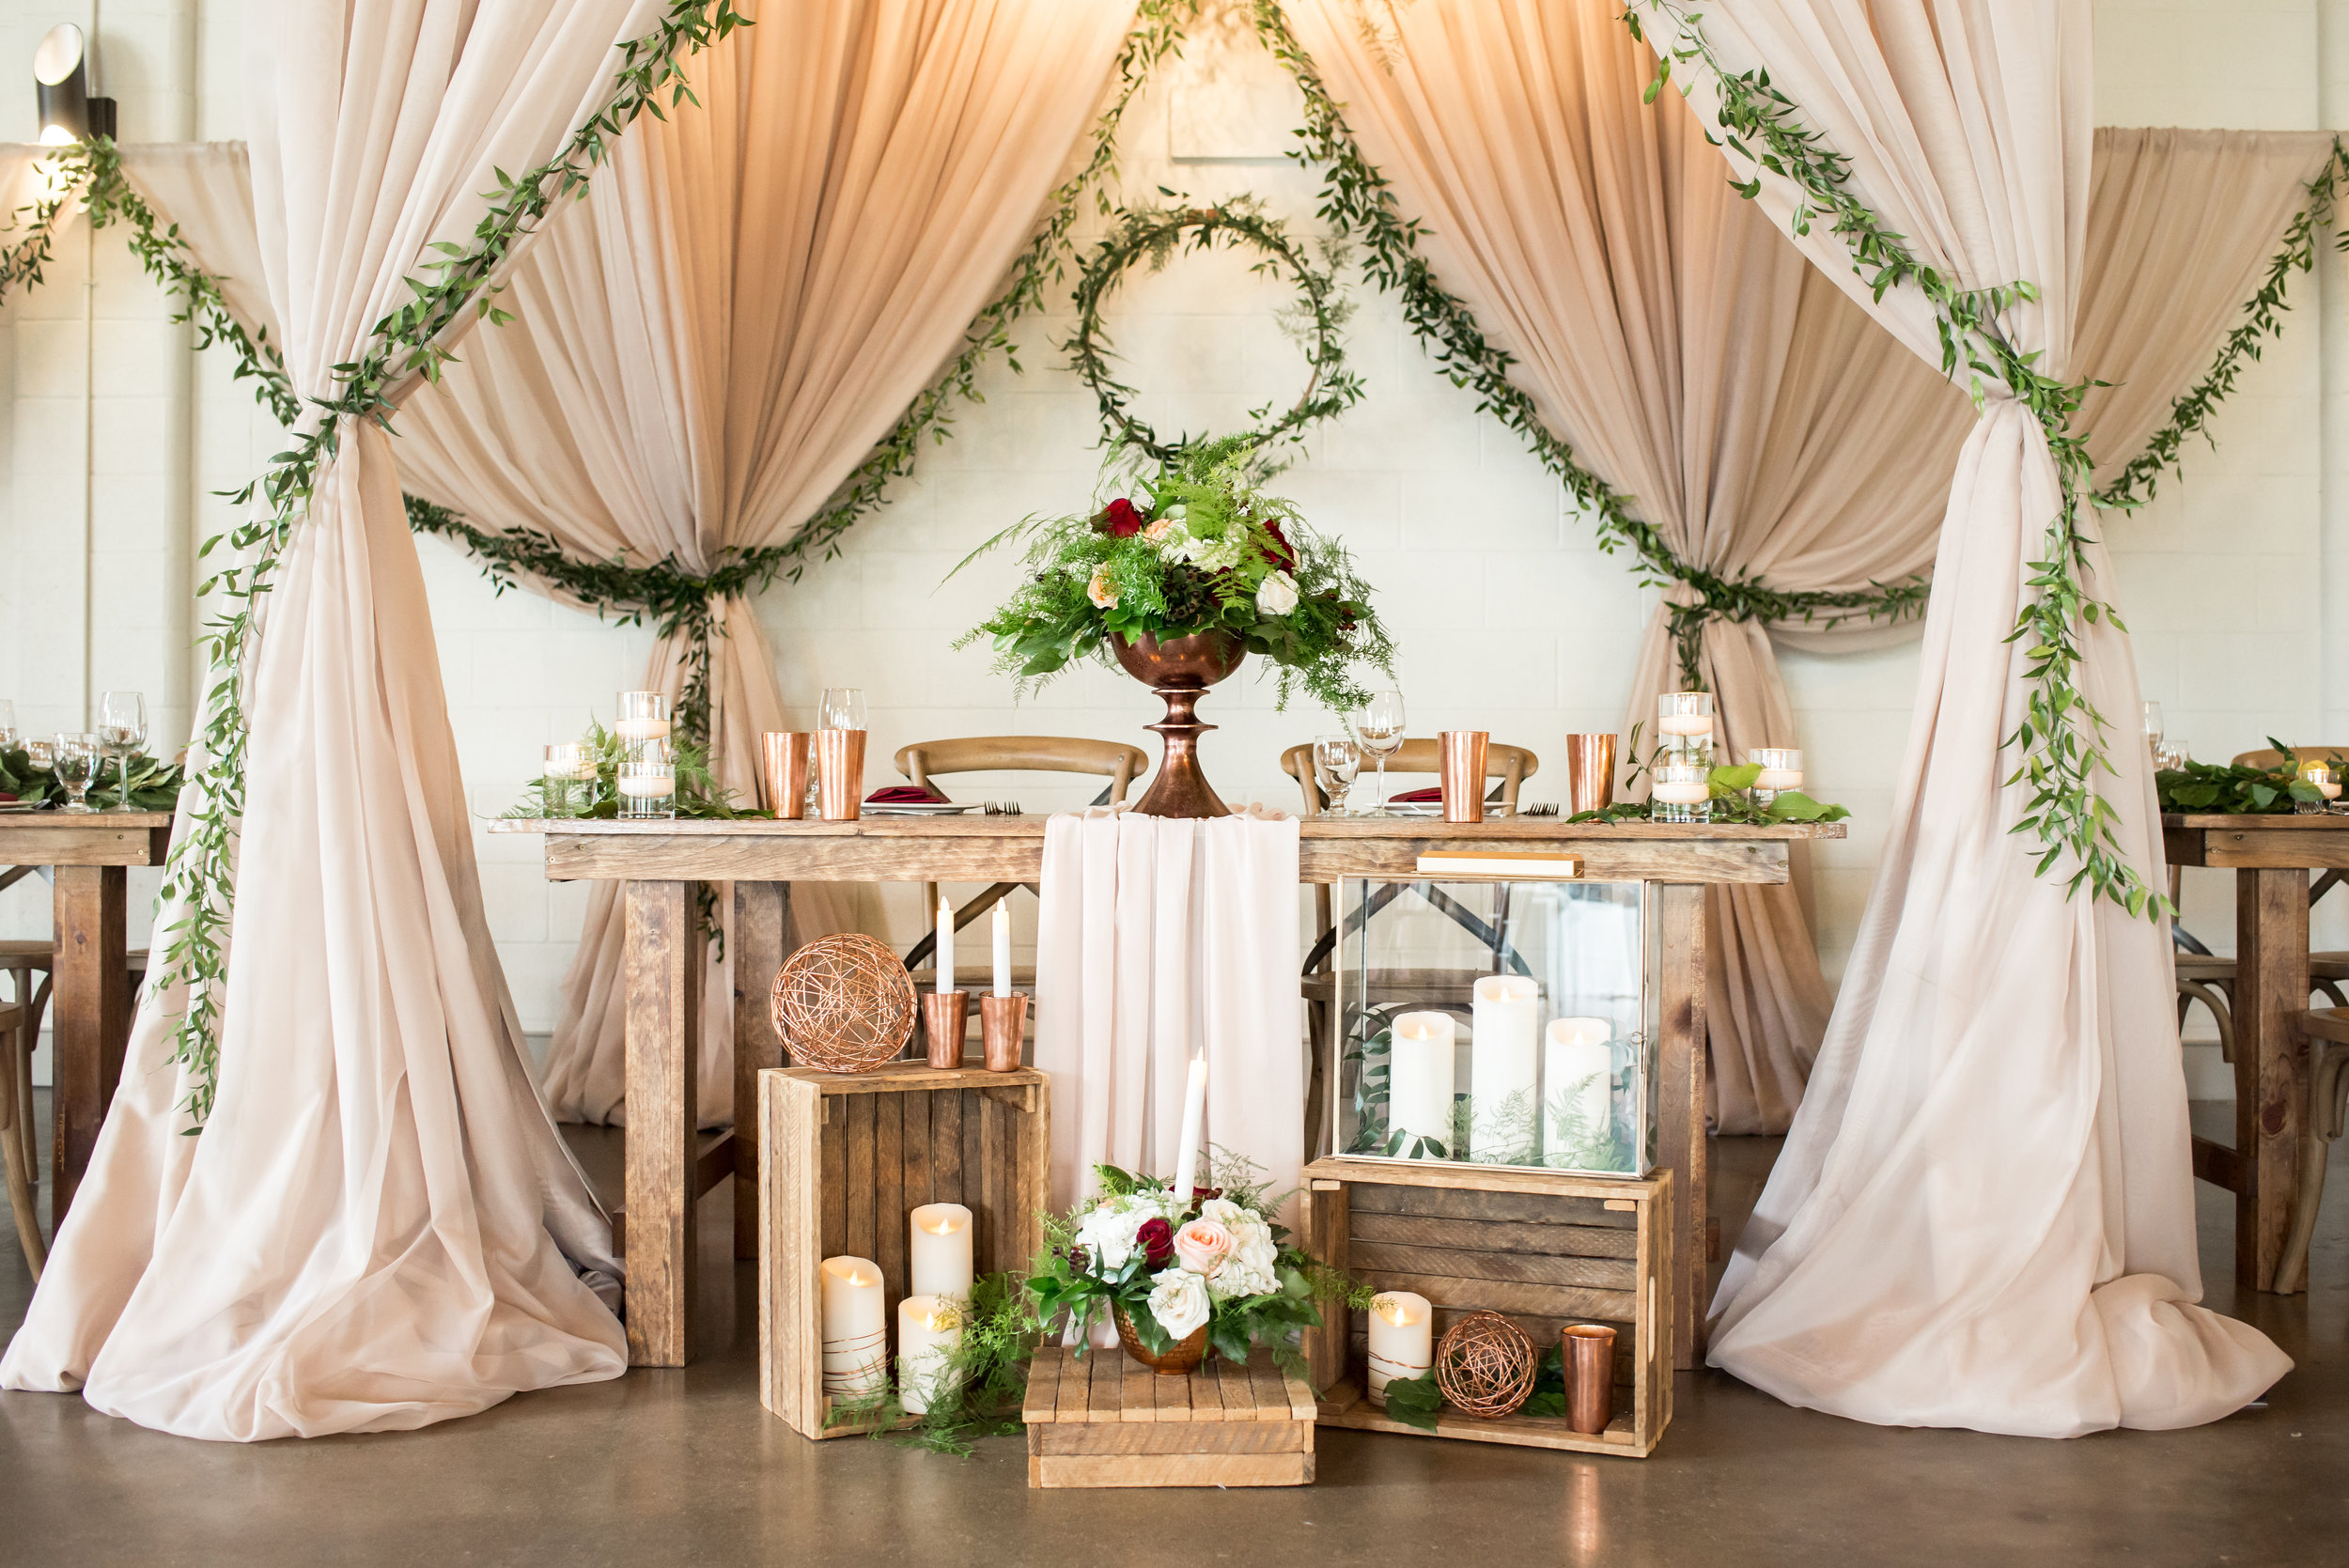 An intimate sweetheart table was set beneath the chuppah at the center of the Hideaway design, with romantic accents like a flowing chiffon runner, greenery wreath and garland, and a multitude of candlelight.